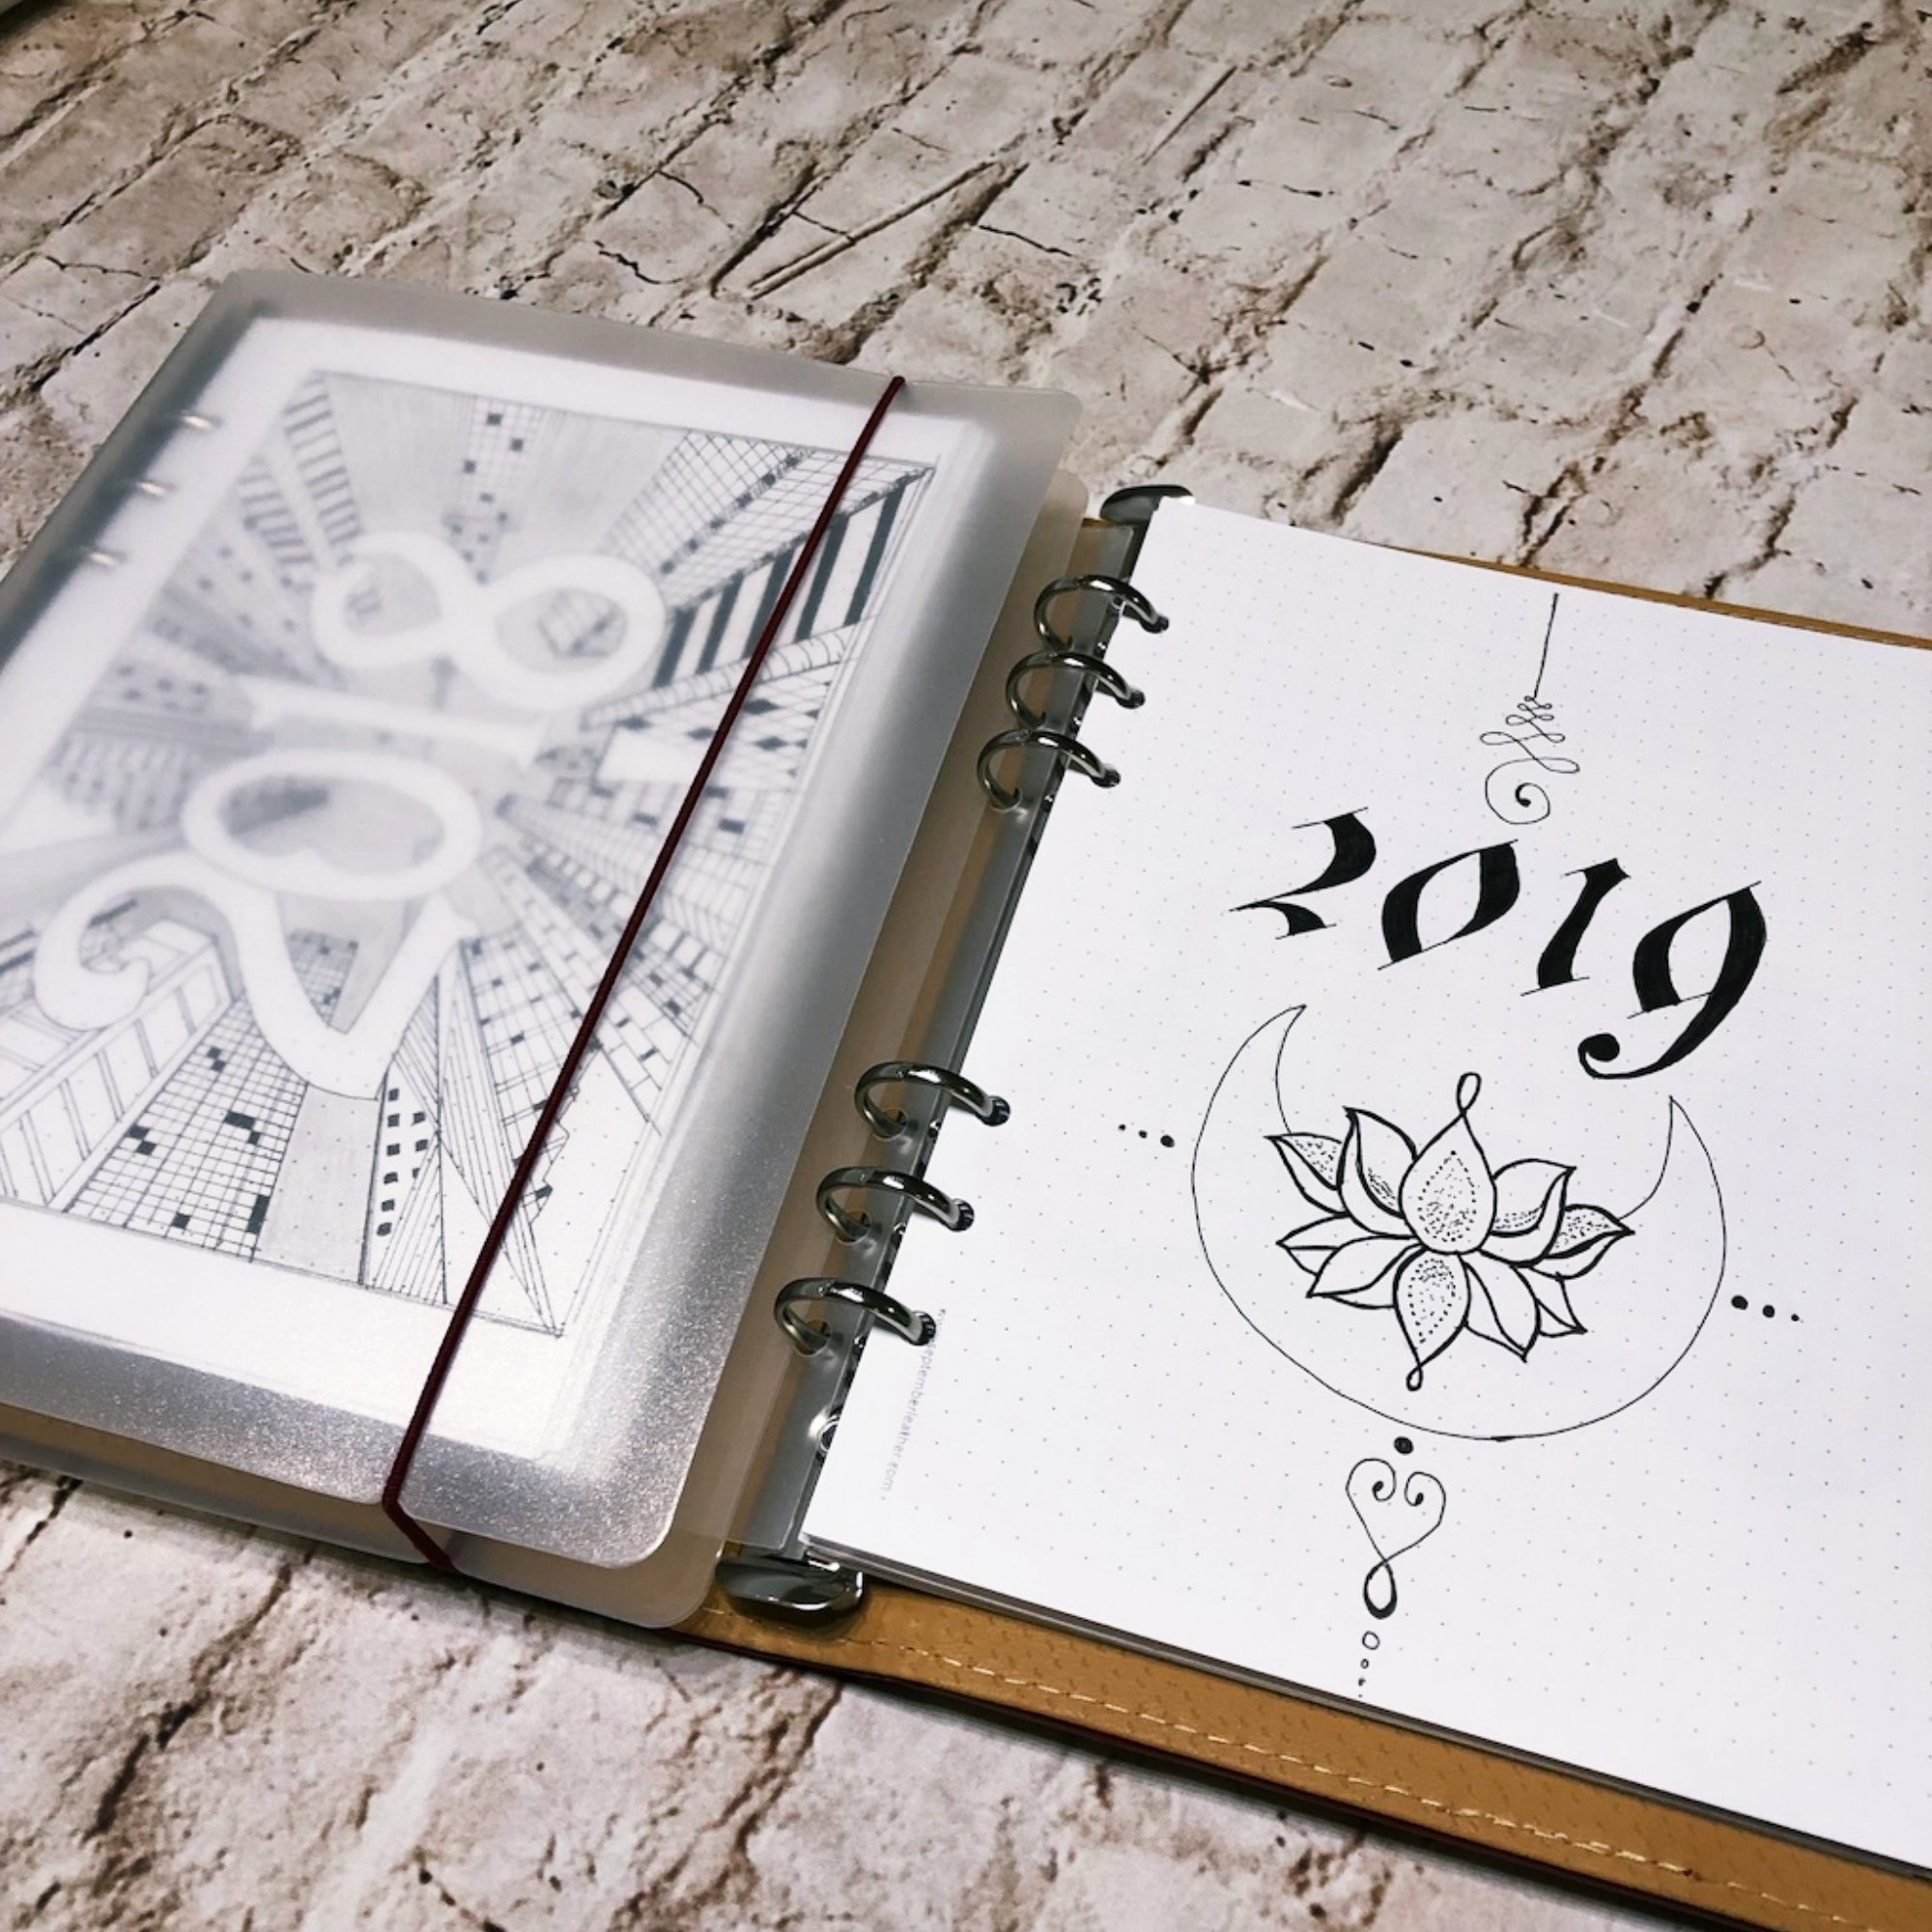 2019 cover page - itstartswithacoffee.com #2019 #yearcover #coverpage